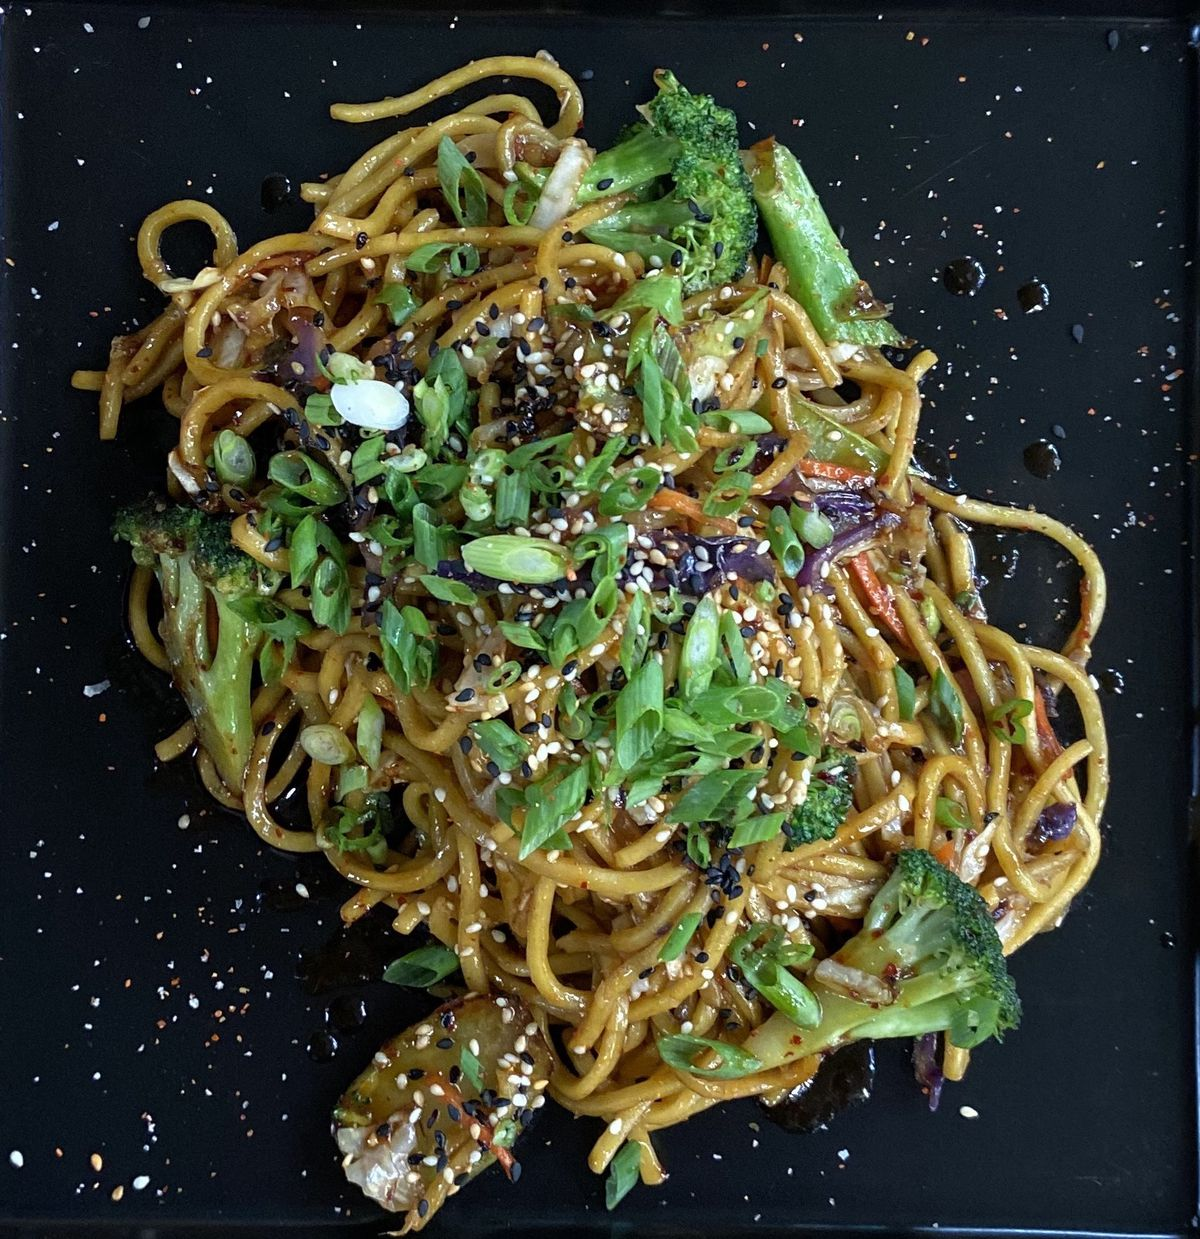 A plate of yakisoba noodles, topped with chopped chives